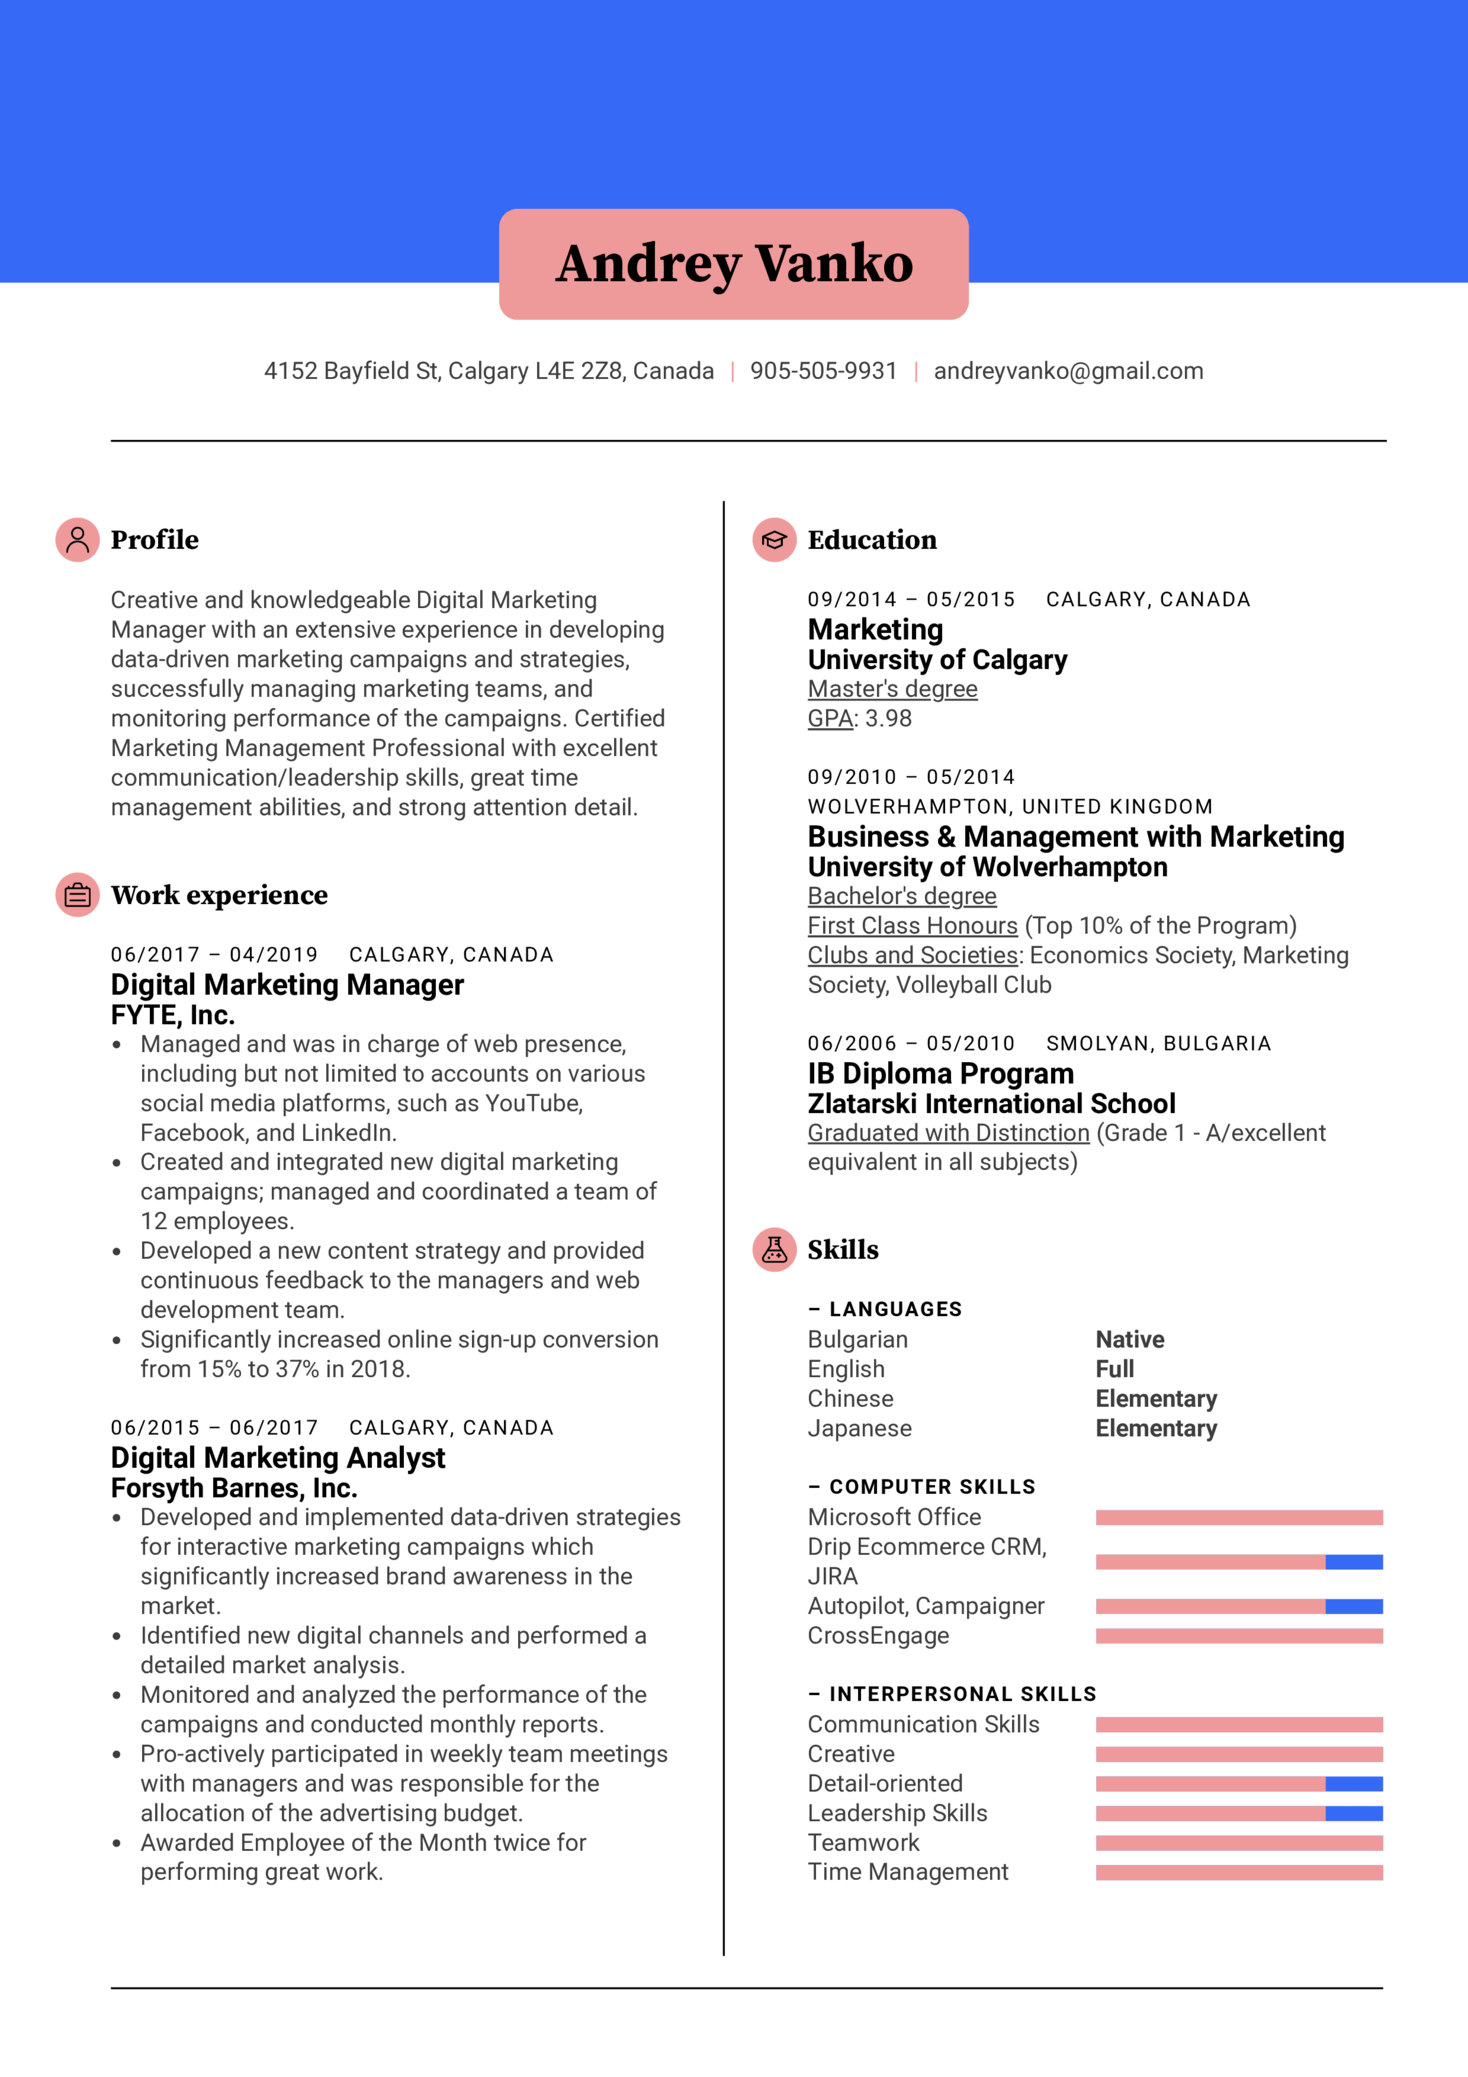 Digital Marketing Manager Resume Sample Kickresume